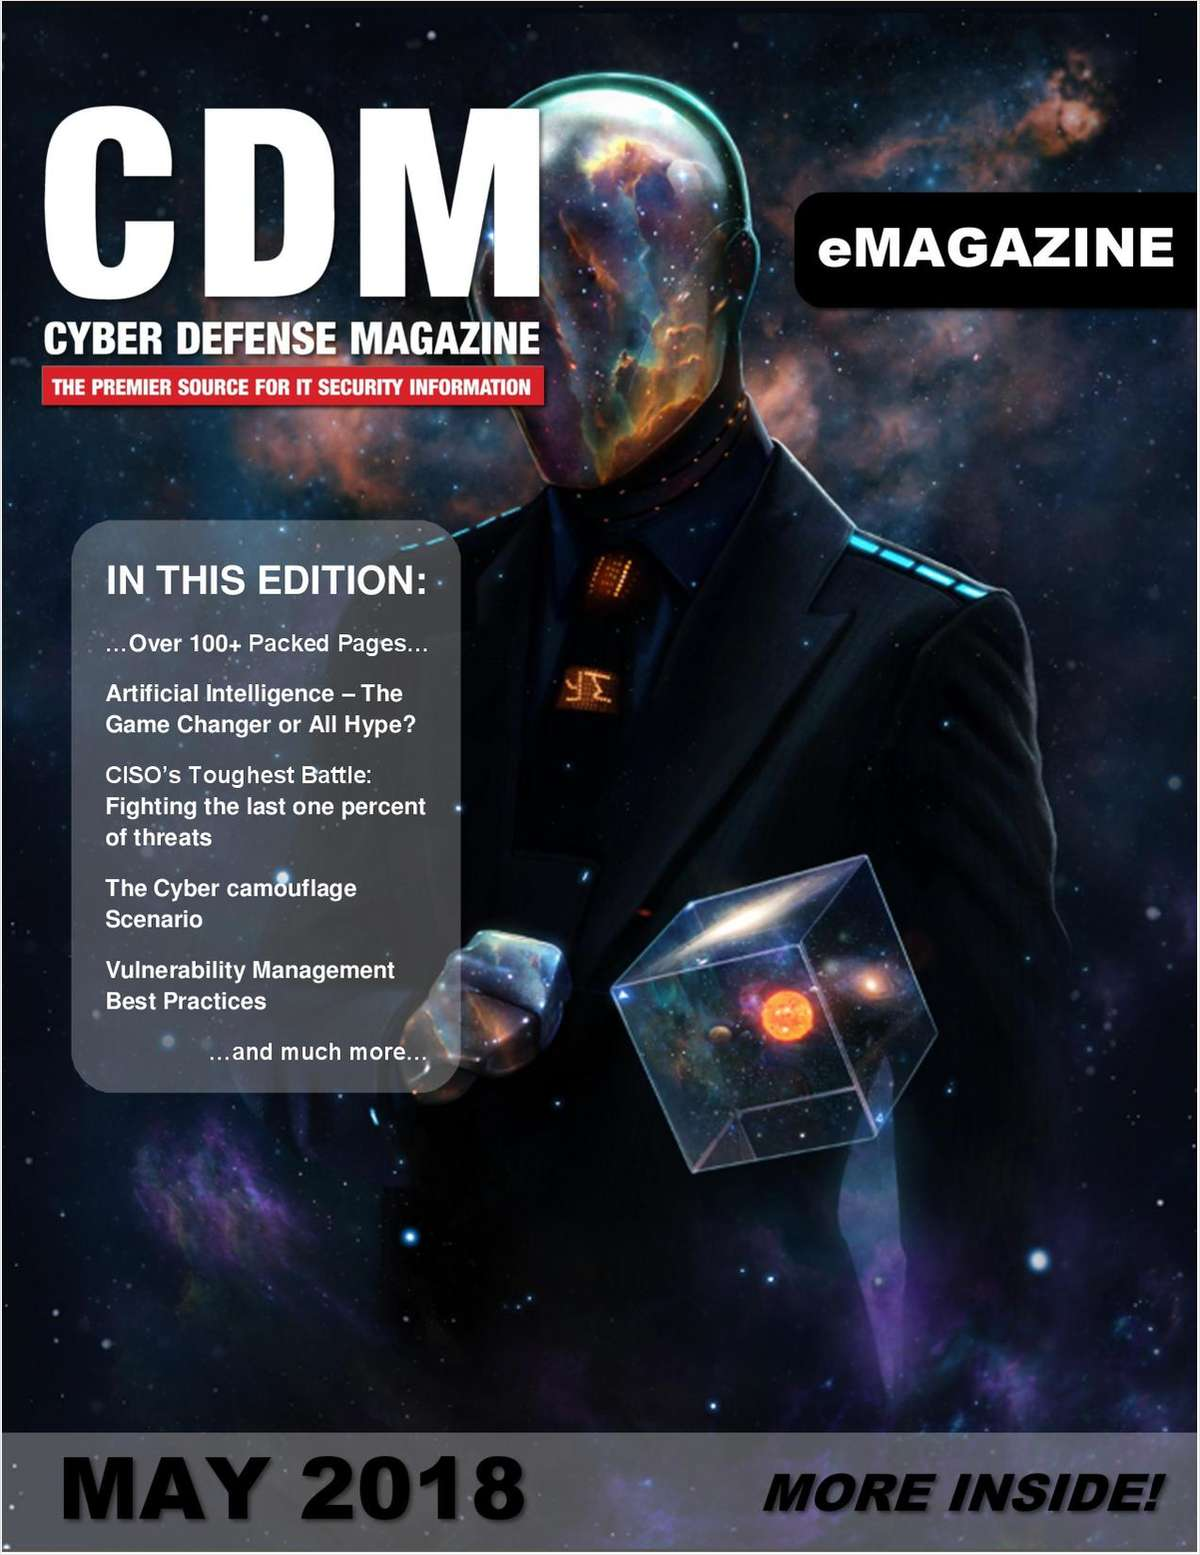 Cyber Defense Magazine - May 2018